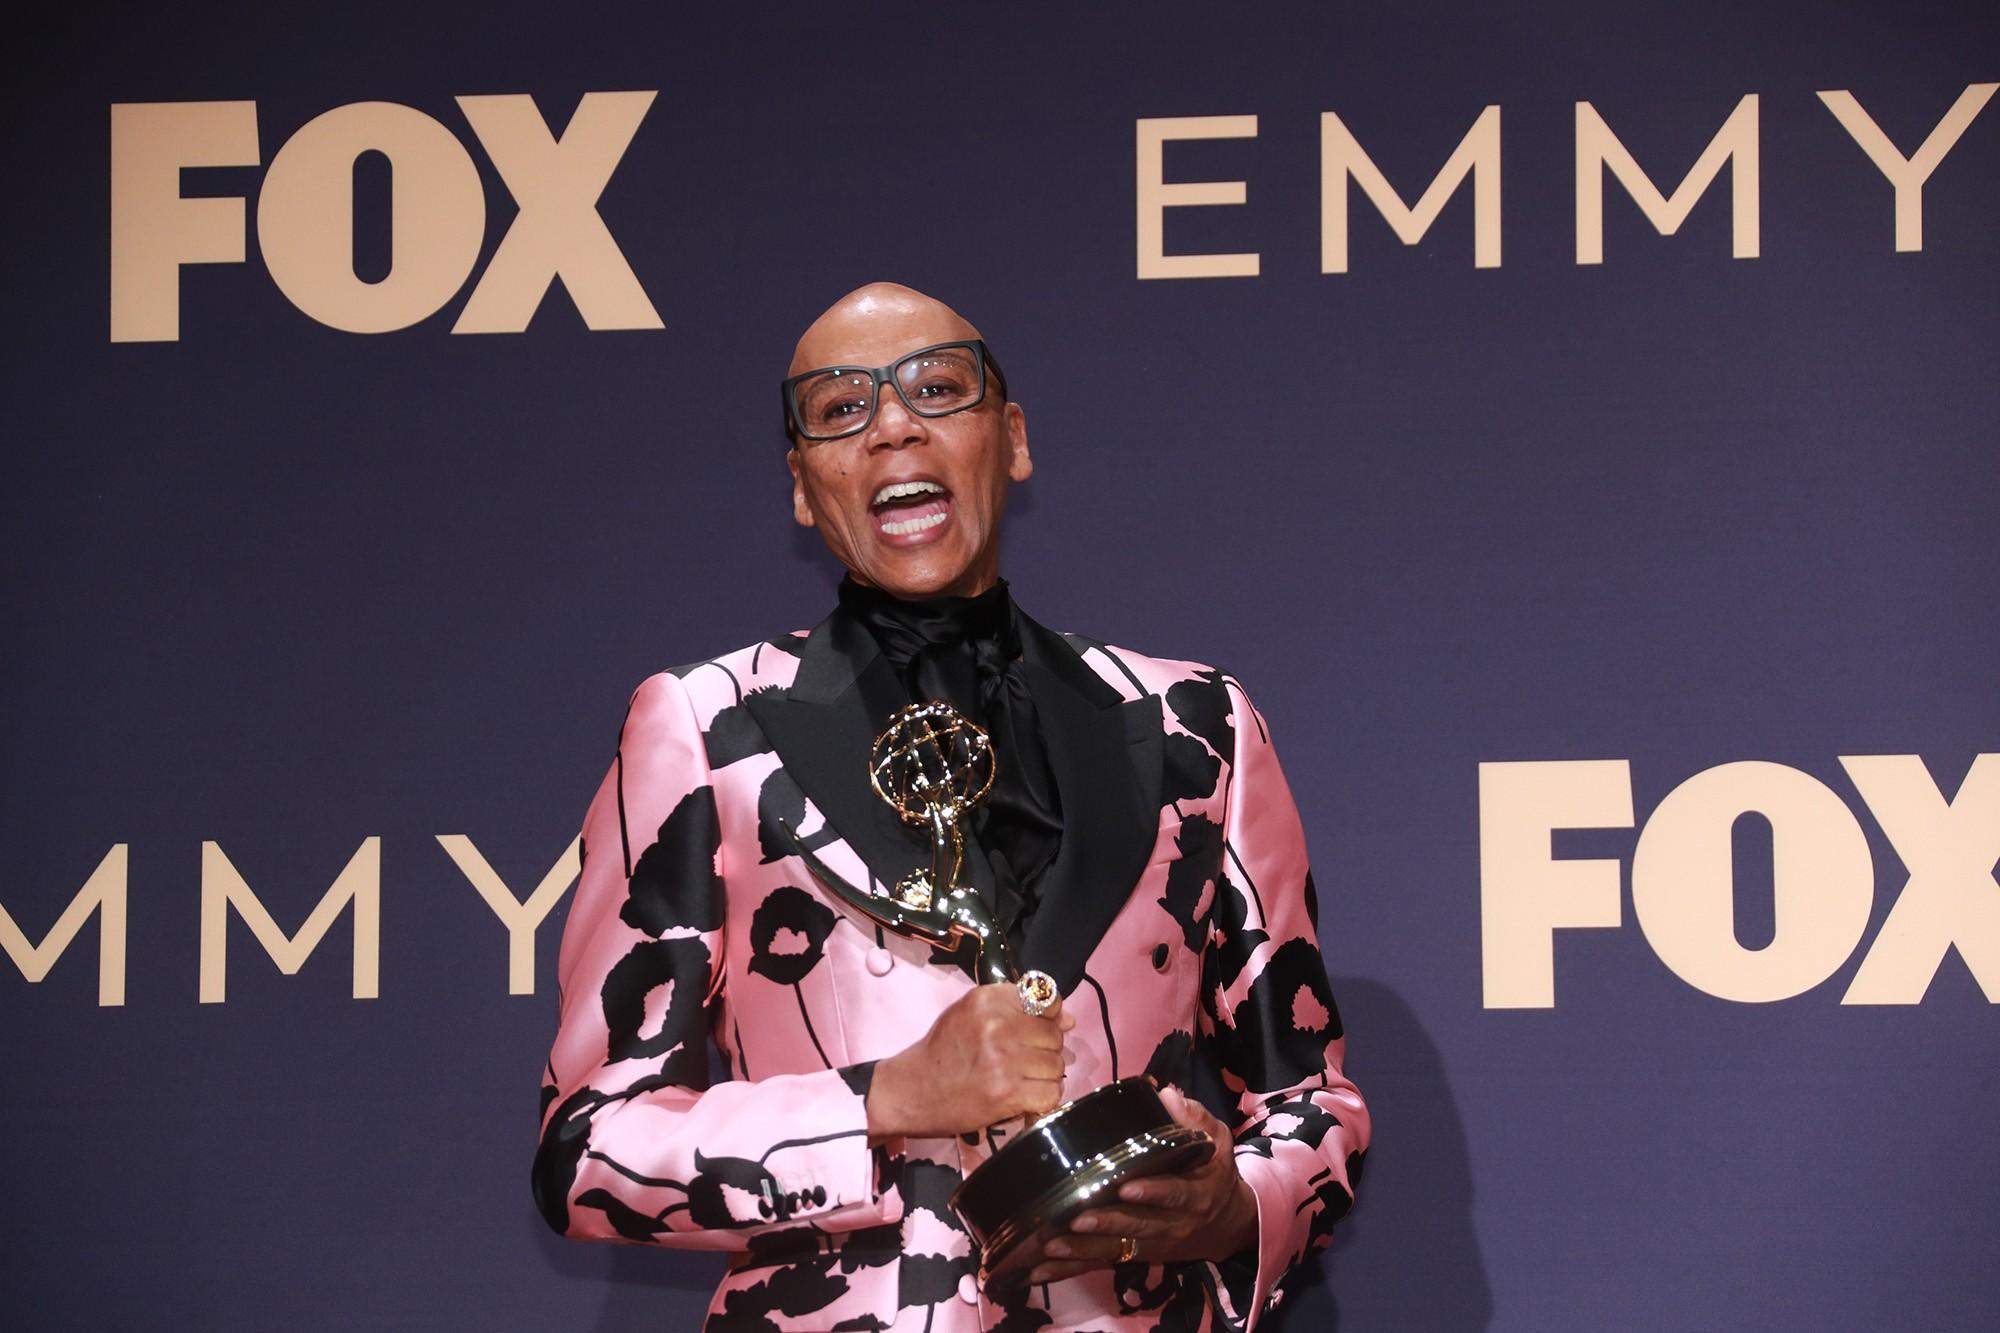 RuPaul backstage at the 71st Primetime Emmy Awards at the Microsoft Theater in Los Angeles on Sunday, Sept. 22, 2019. (Allen J. Schaben/Los Angeles Times/TNS)